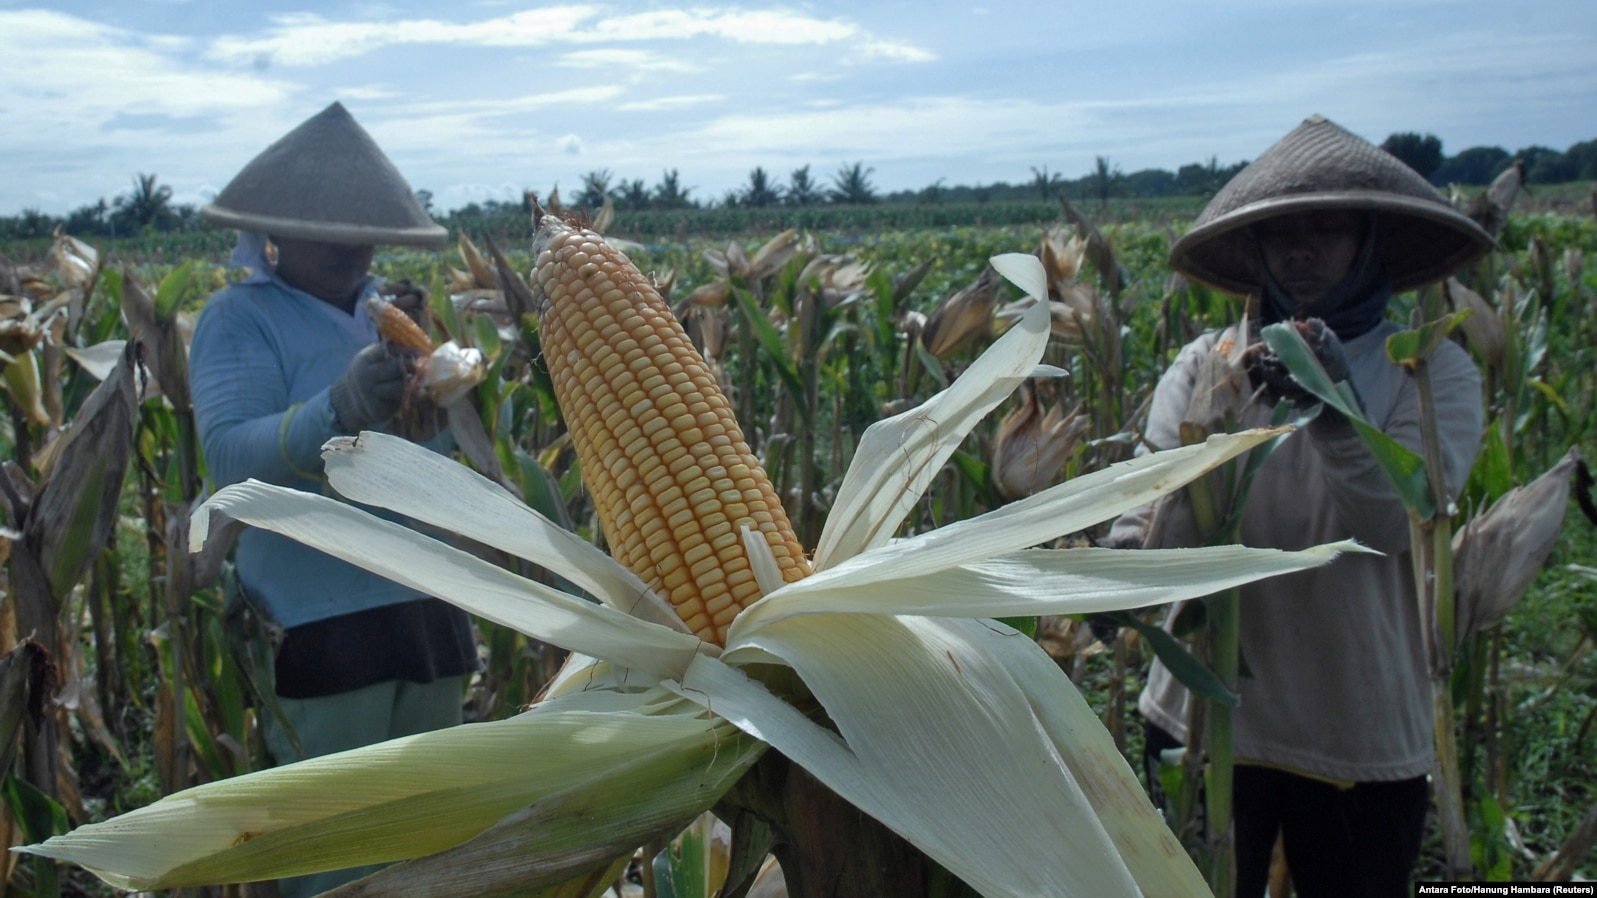 Indonesia Food Sovereignty Remains Elusive